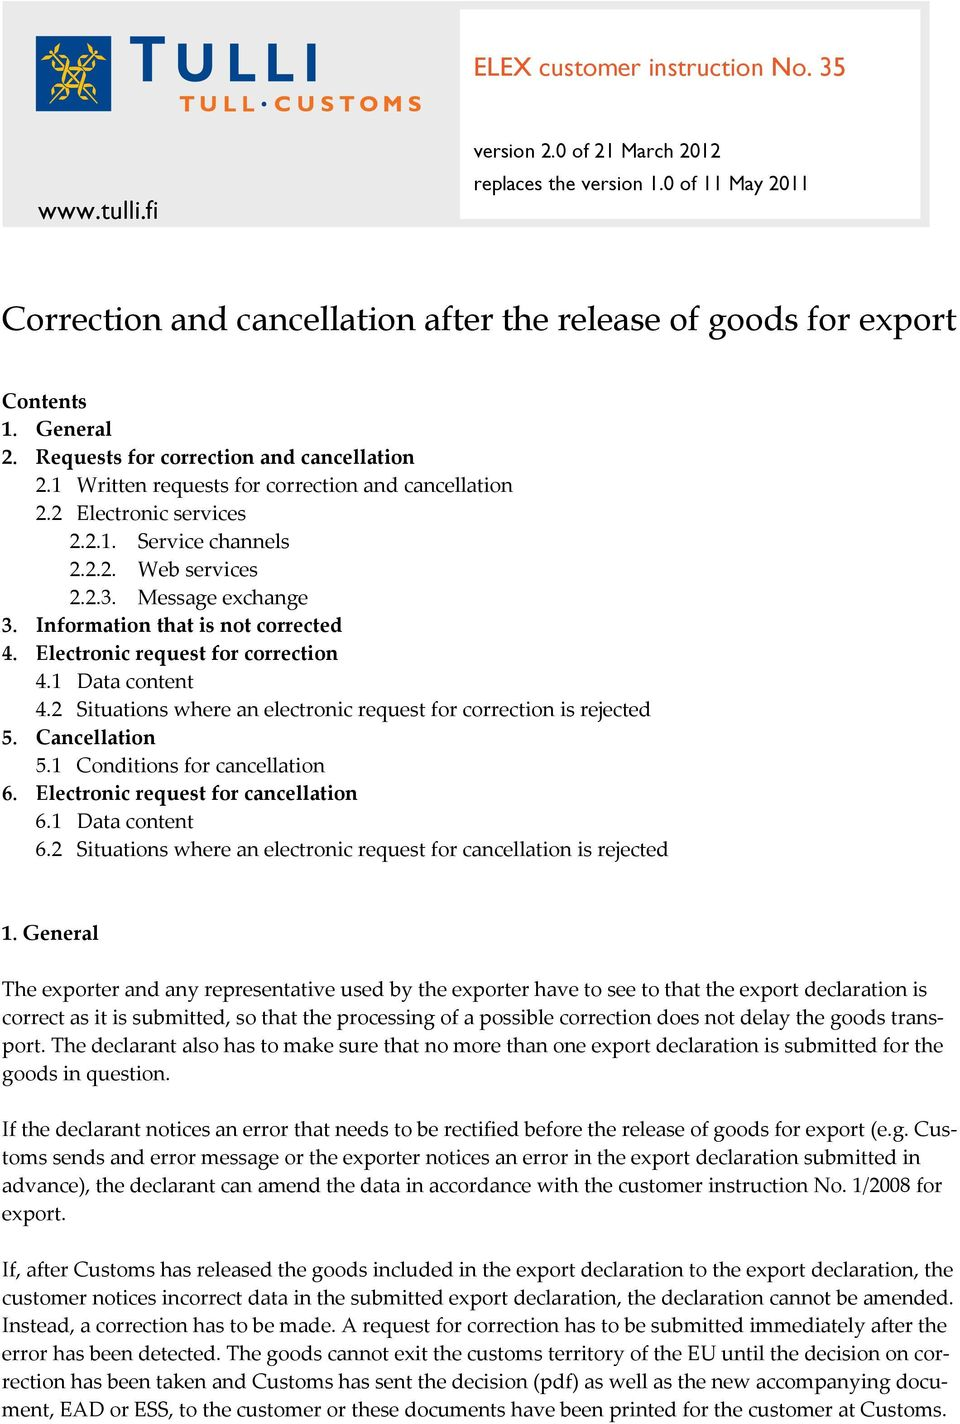 Correction and cancellation after the release of goods for